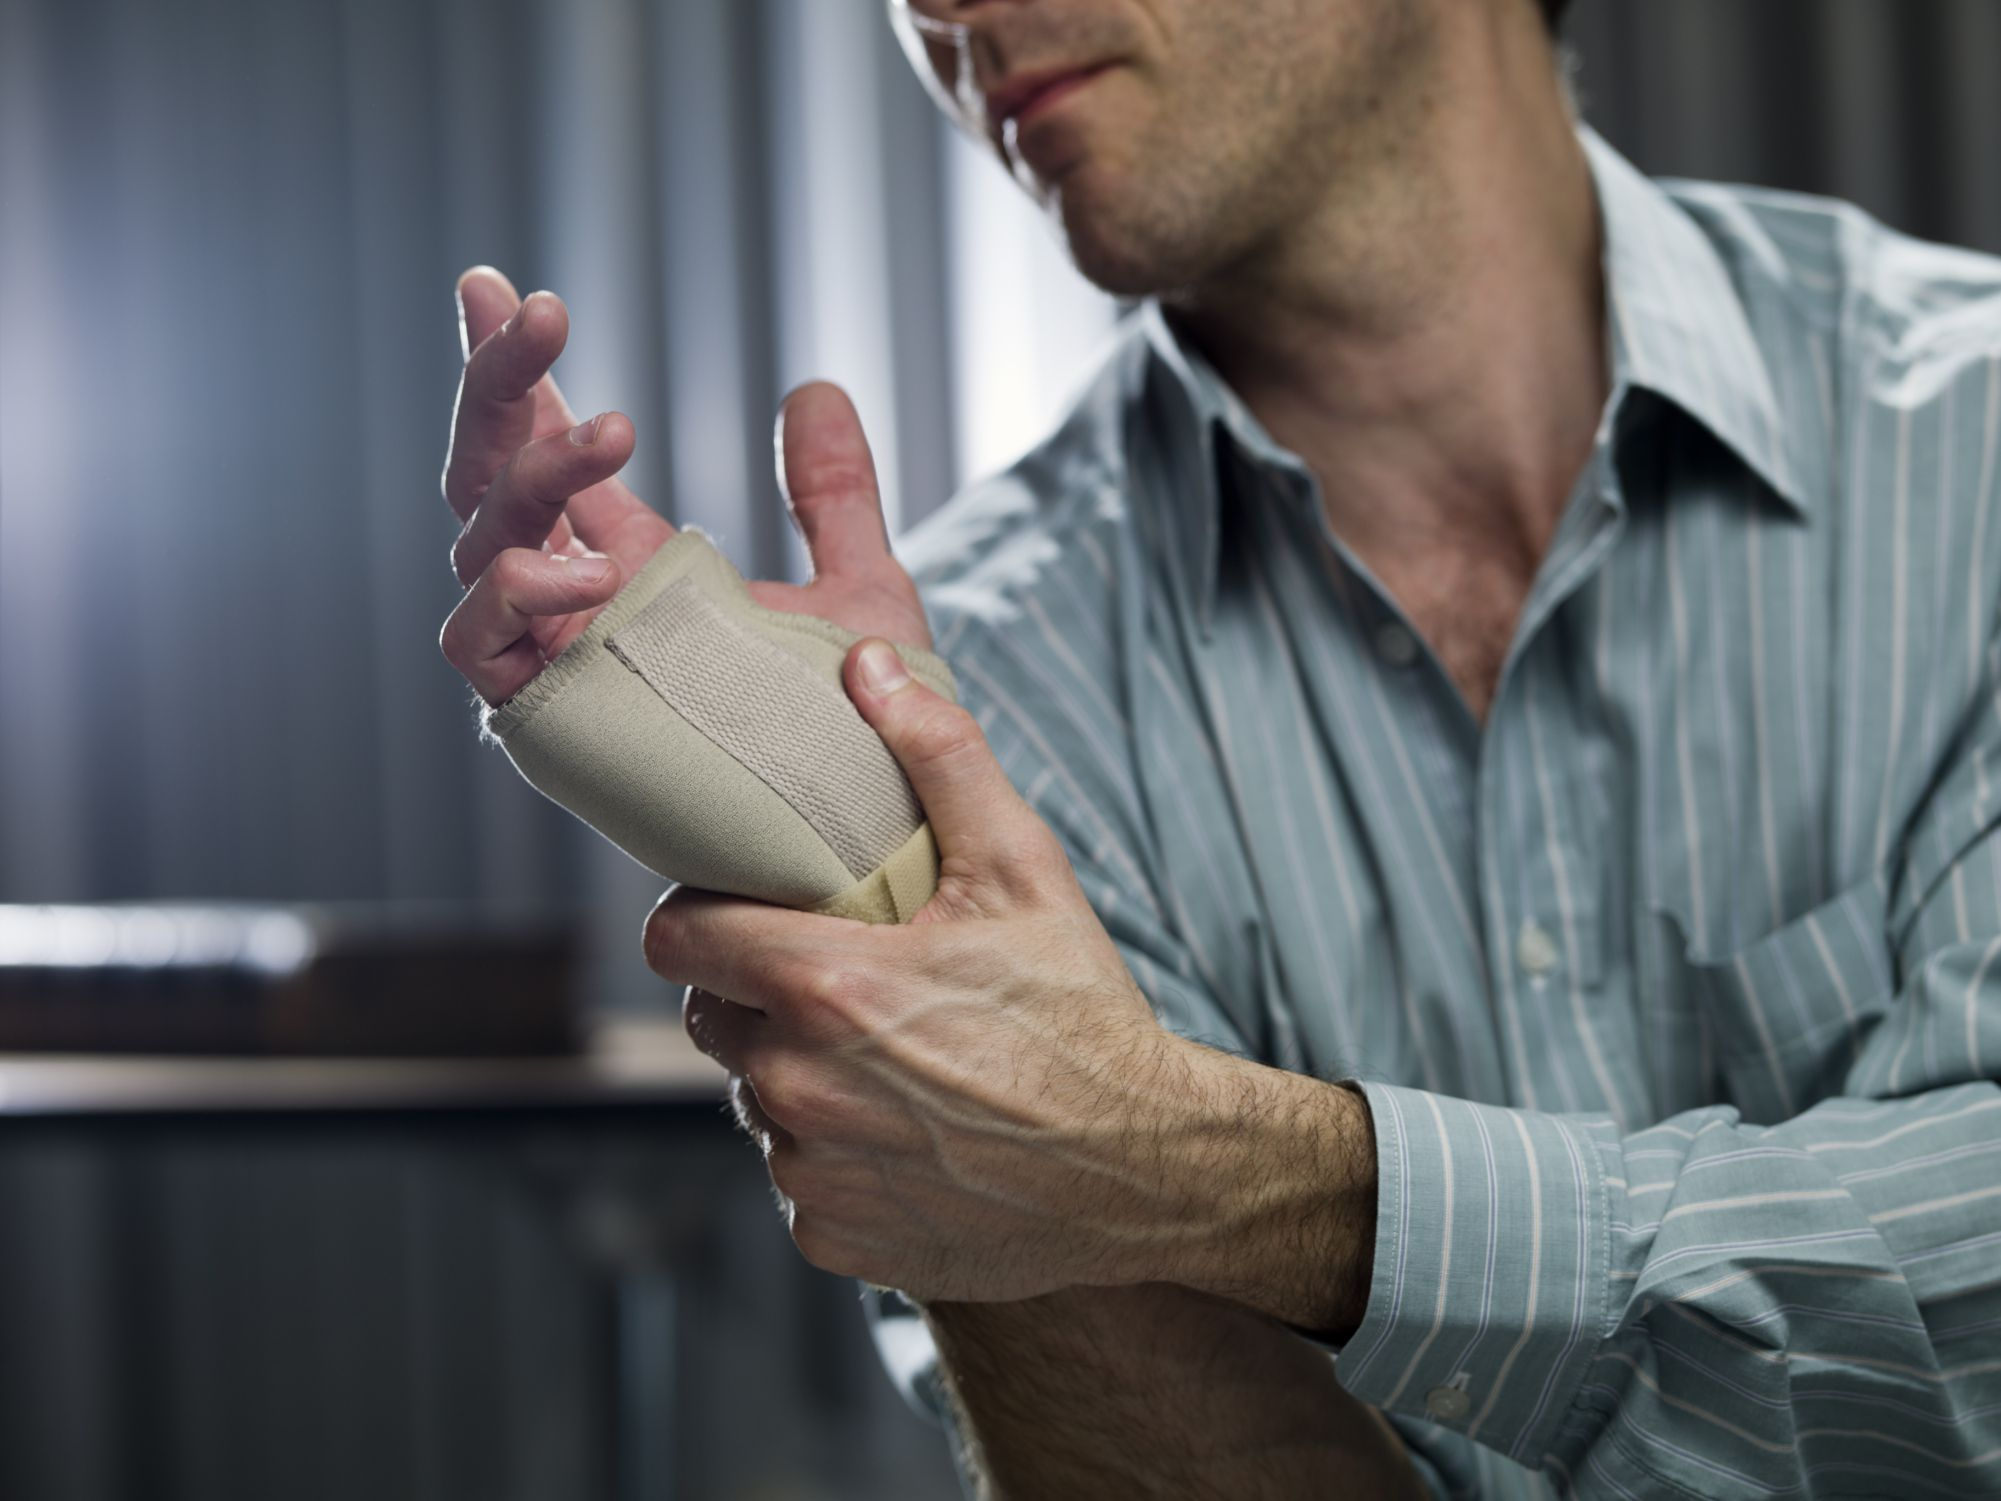 Carpal Tunnel Syndrome: Overview and More